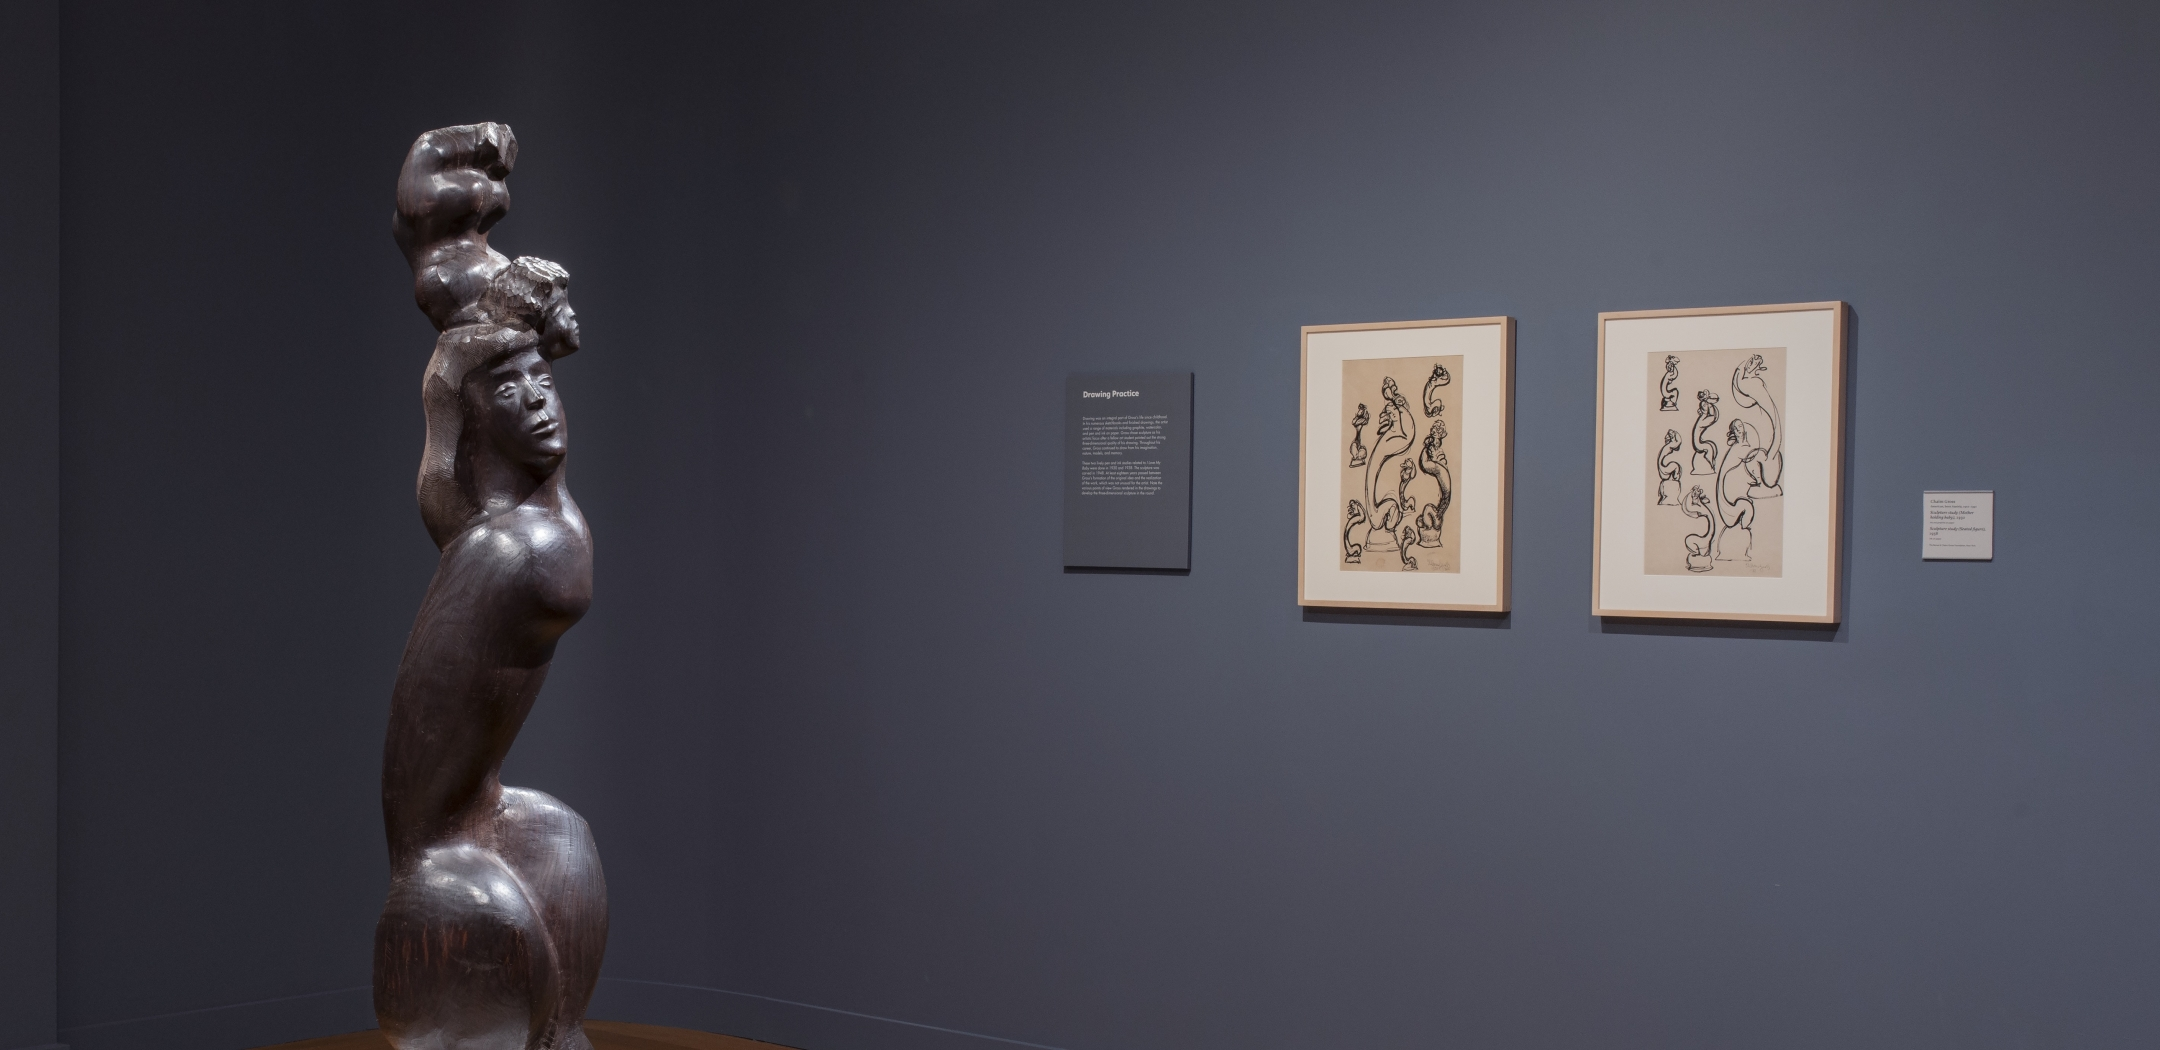 Photo of a wooden sculpture, I LOVE MY BABY, 1948, depicting a woman with long hair, crouched so that her legs are drawn close to her tall torso. She is supporting the figure of a baby, whose head touches hers but whose body is raised above its head. To the right of the sculpture are two framed ink sculpture studies for the same sculpture. The walls are faded navy.